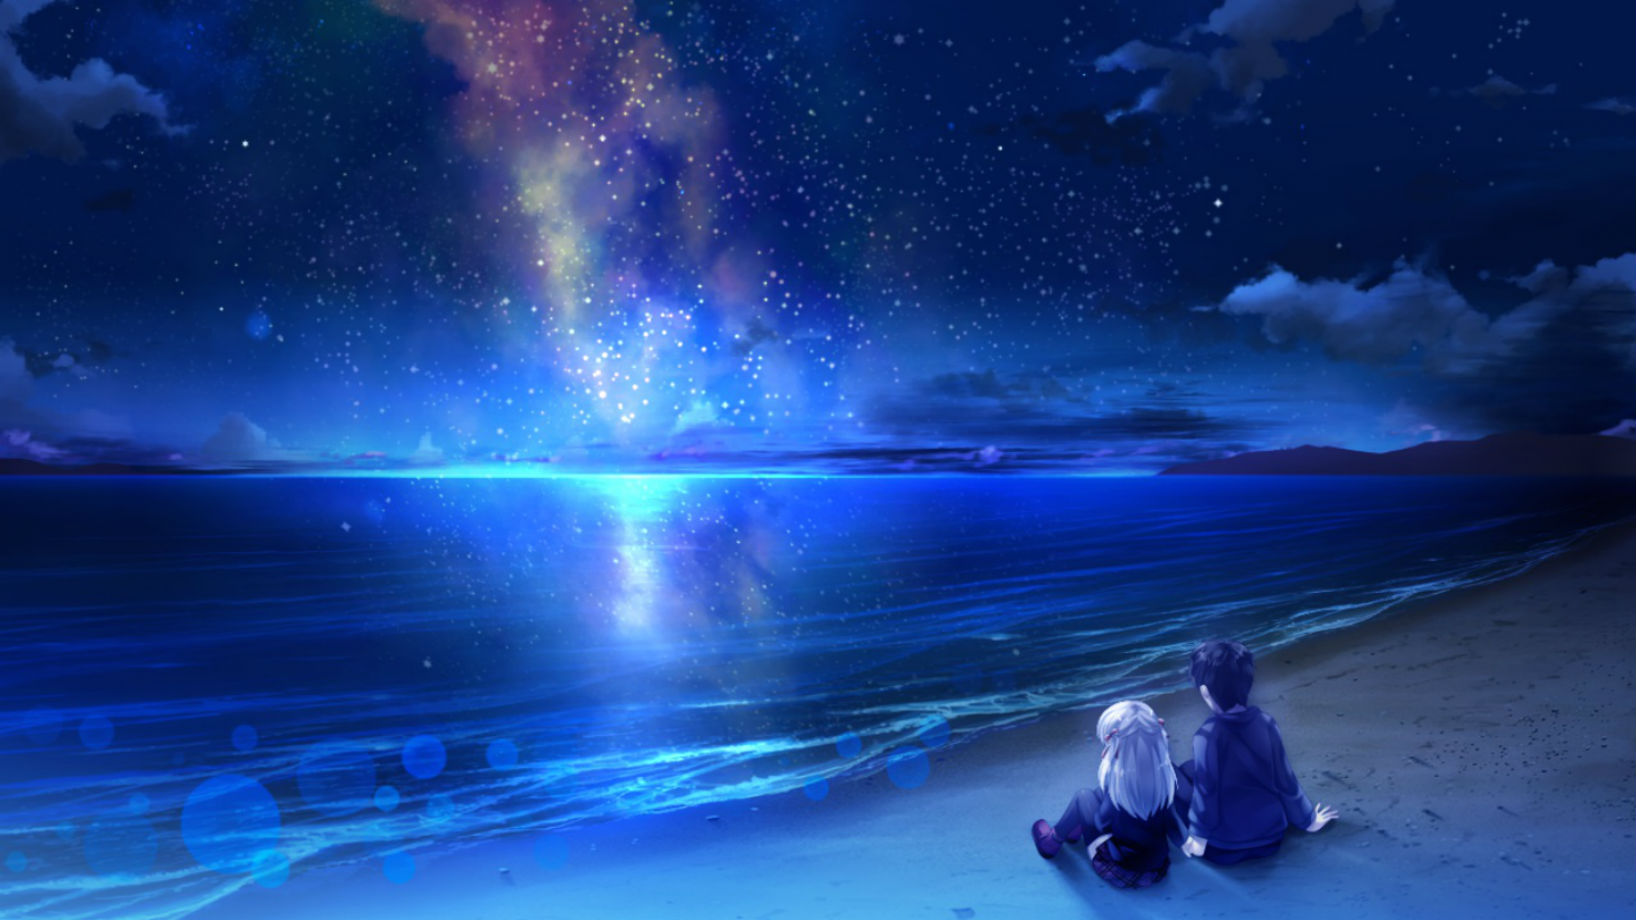 Beach at Night With Stars Wallpaper